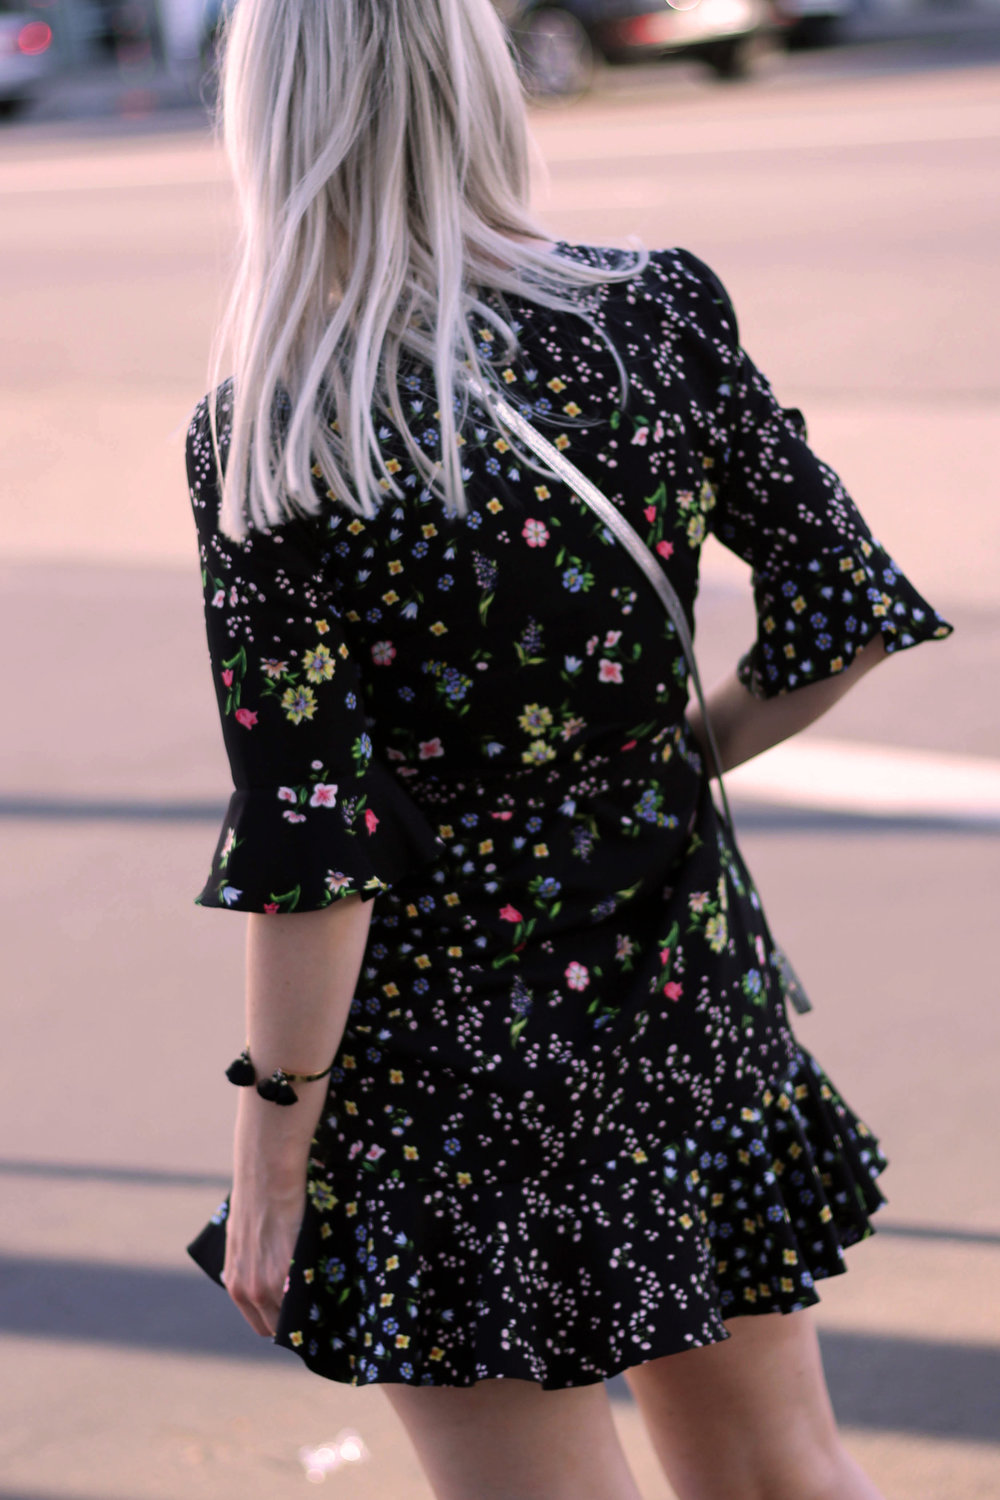 topshop wrap dress, dark floral print, silver bag, los angeles, northern magpie, joey taylor 6